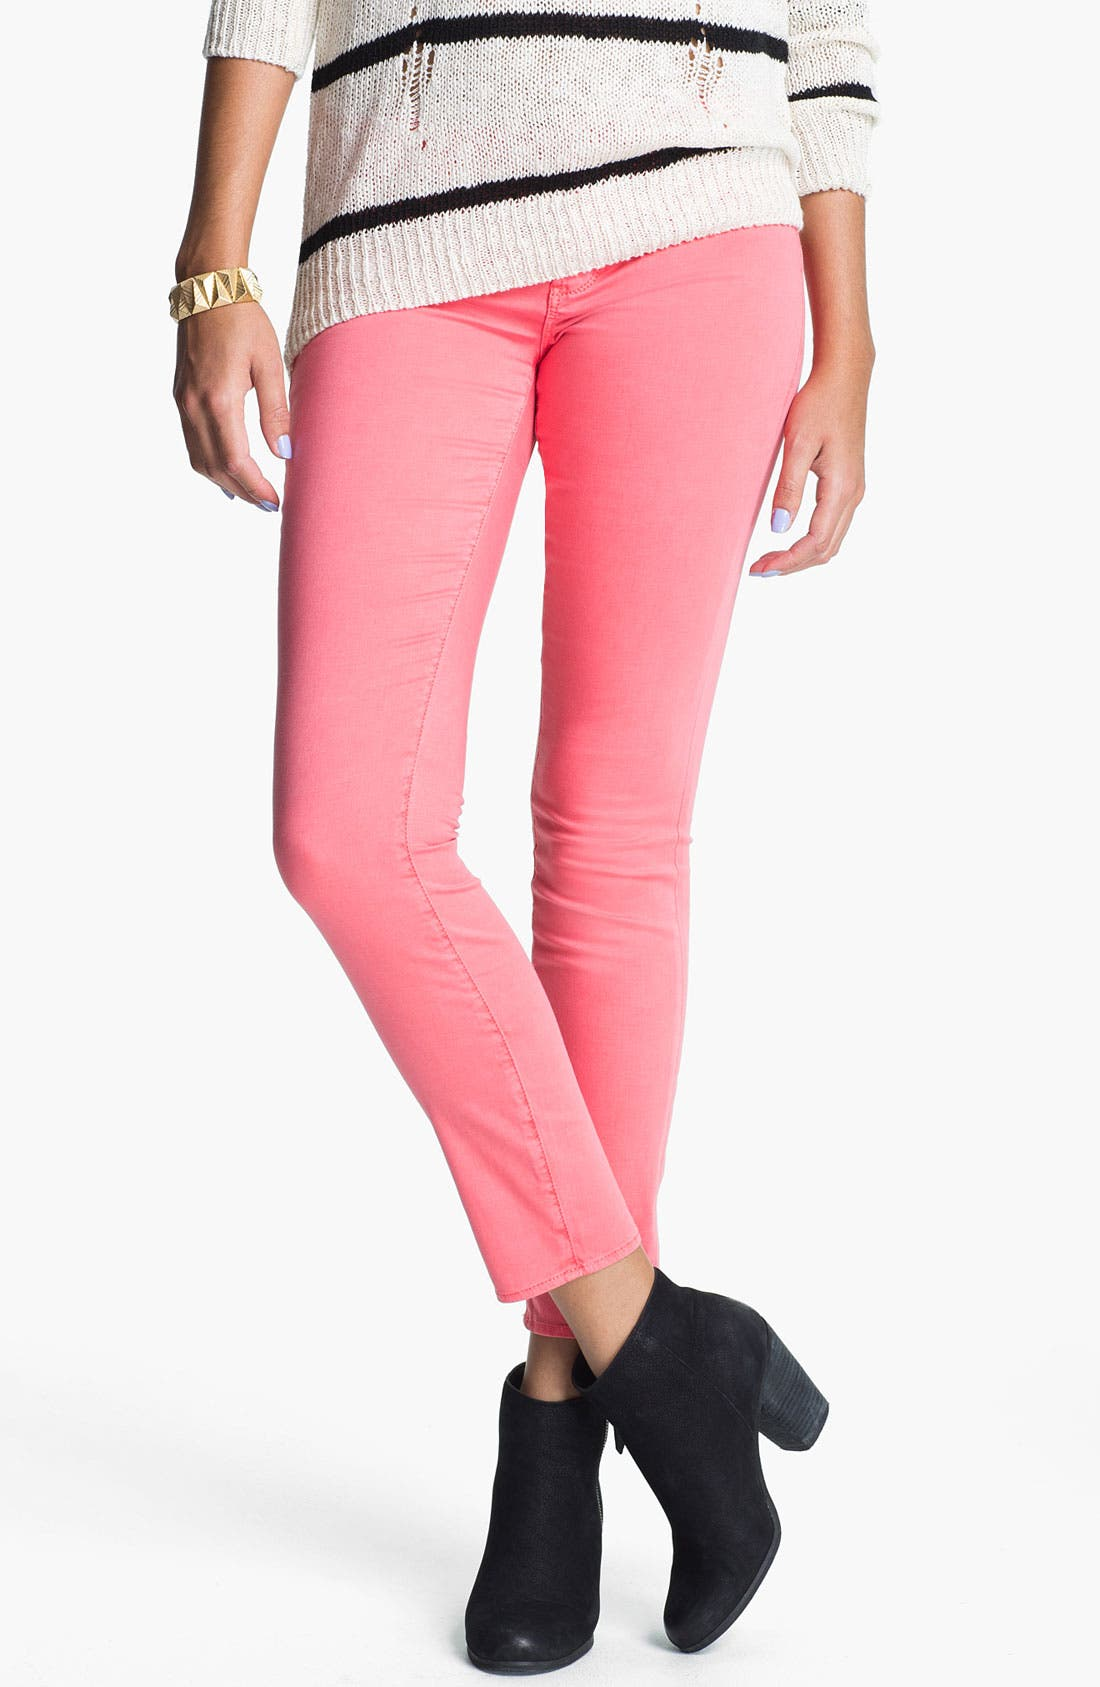 Main Image - Articles of Society 'Olivia' Skinny Jeans (Berry) (Juniors)